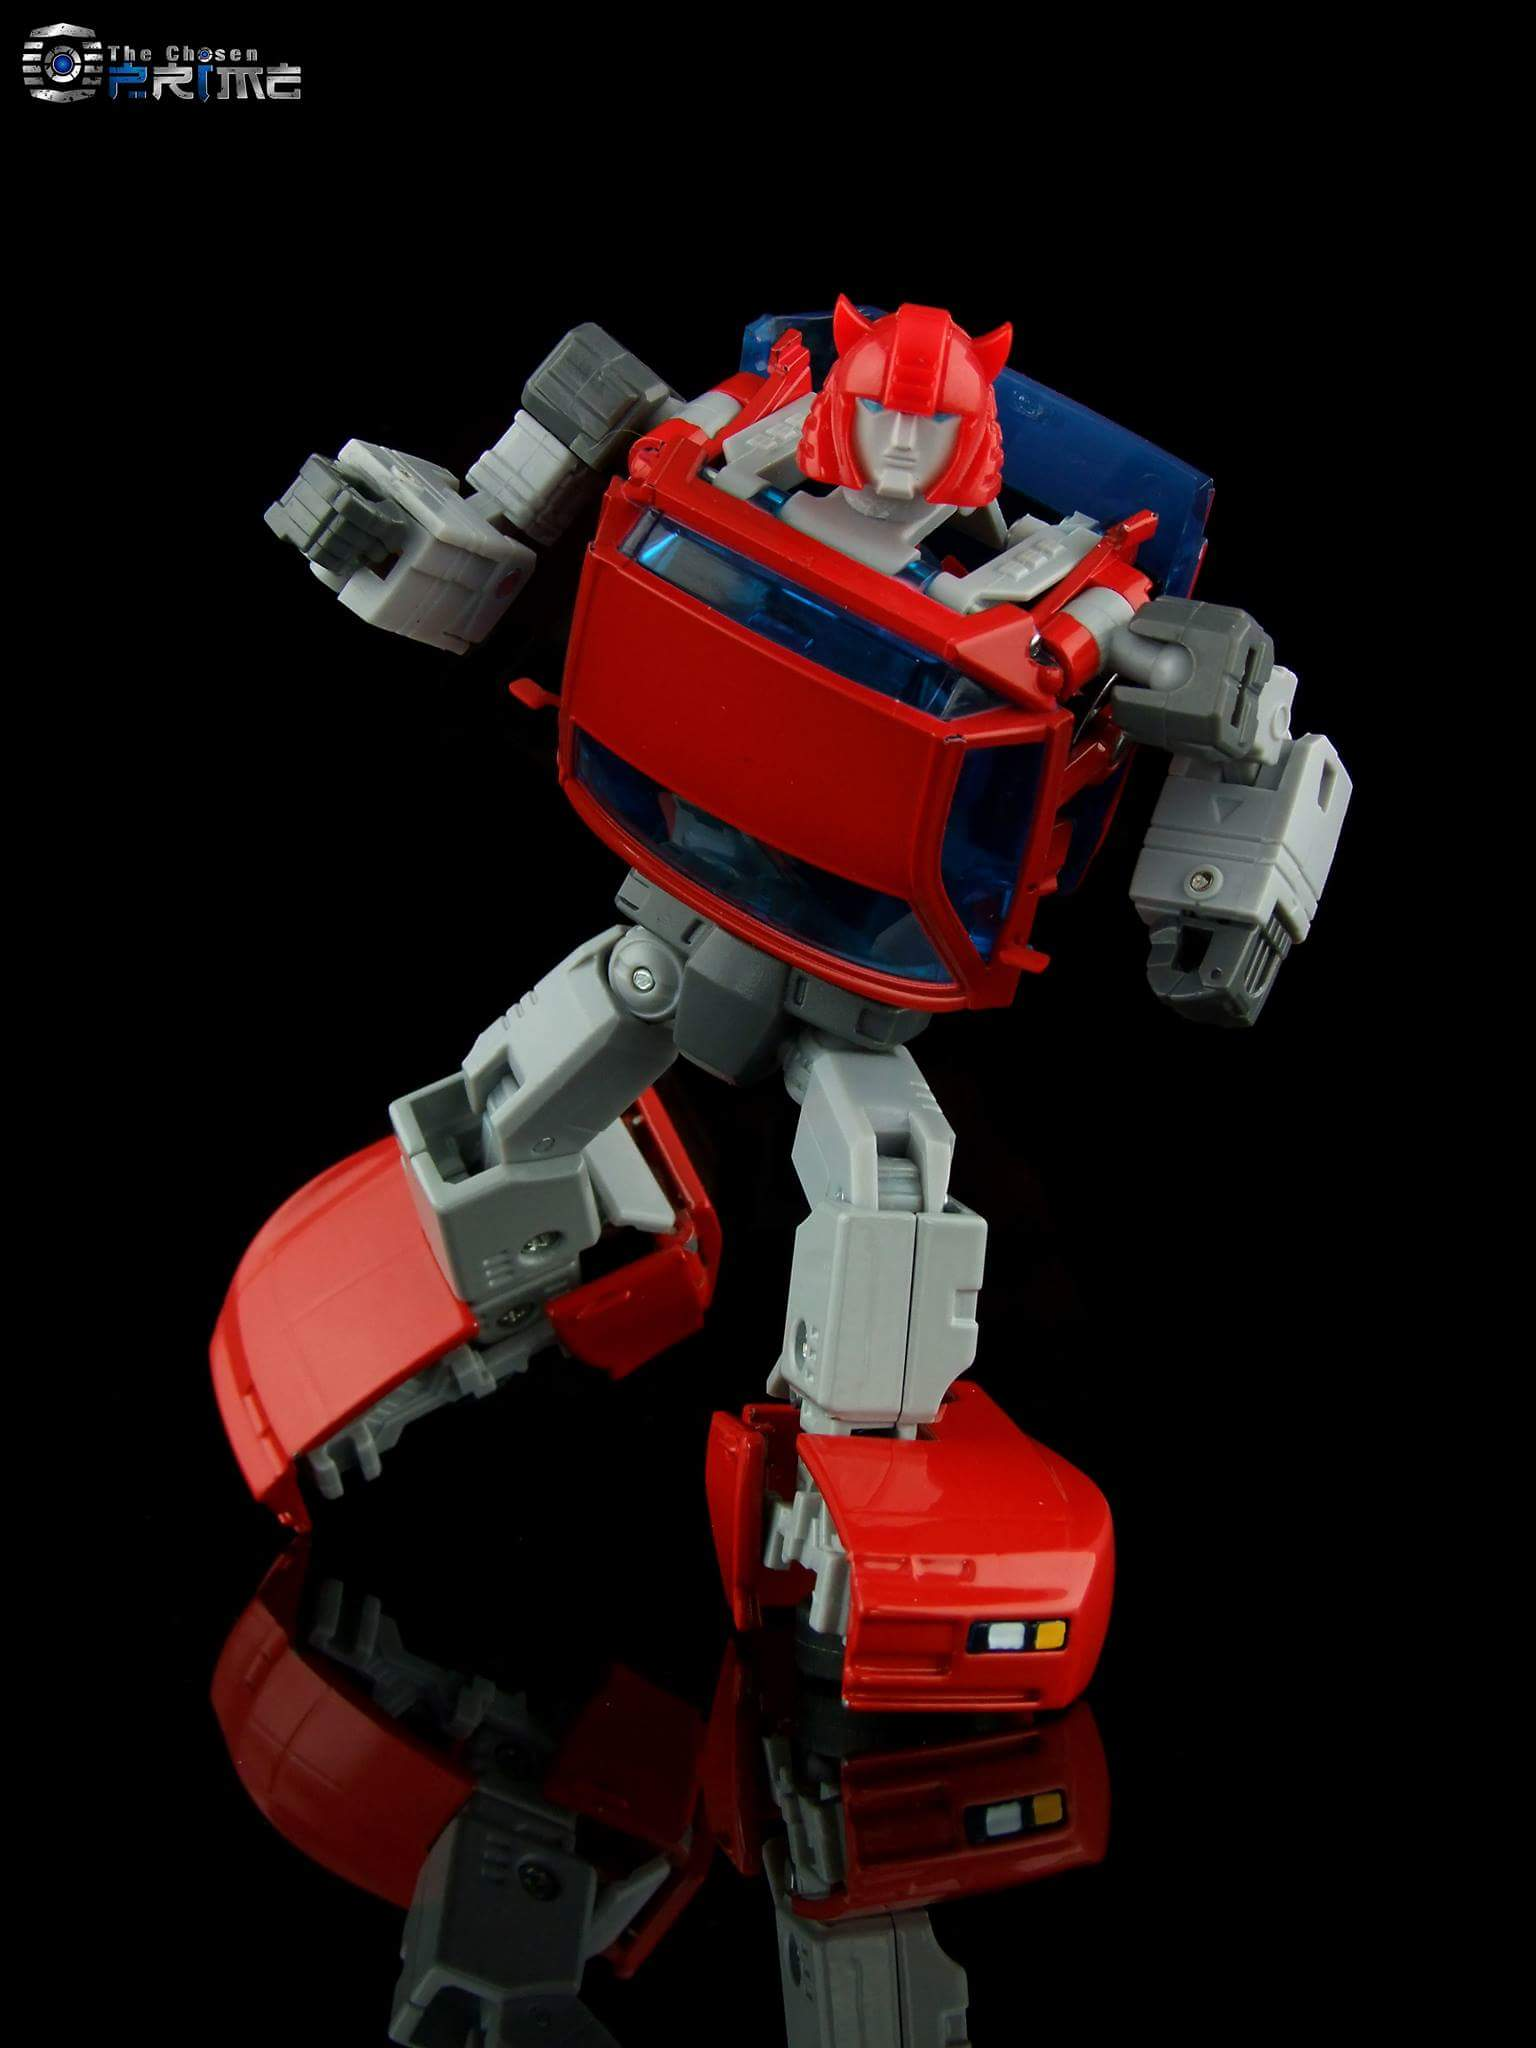 [ACE Collectables] Produit Tiers - Minibots MP - ACE-01 Tumbler (aka Cliffjumper/Matamore), ACE-02 Hiccups (aka Hubcap/Virevolto), ACE-03 Trident (aka Seaspray/Embruns) AfTtwGwi